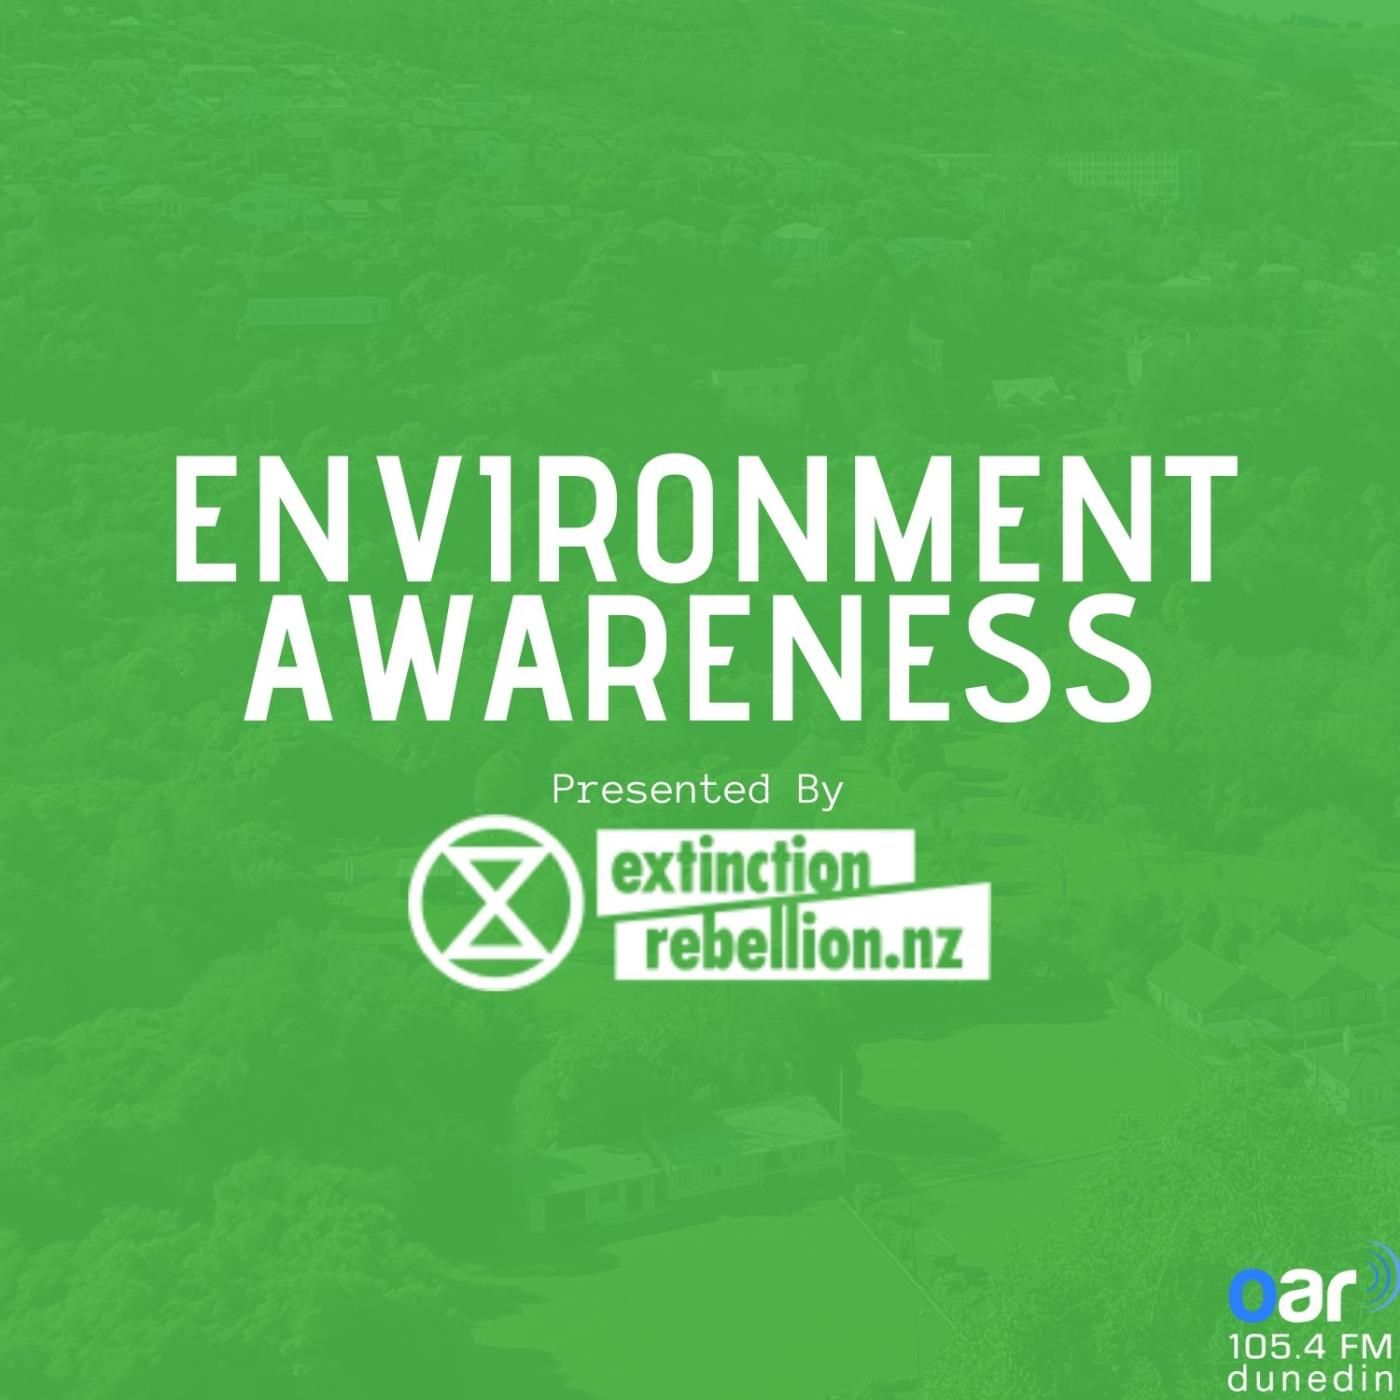 Environment Awareness - 23-04-2020 - Show 29 - John Minto